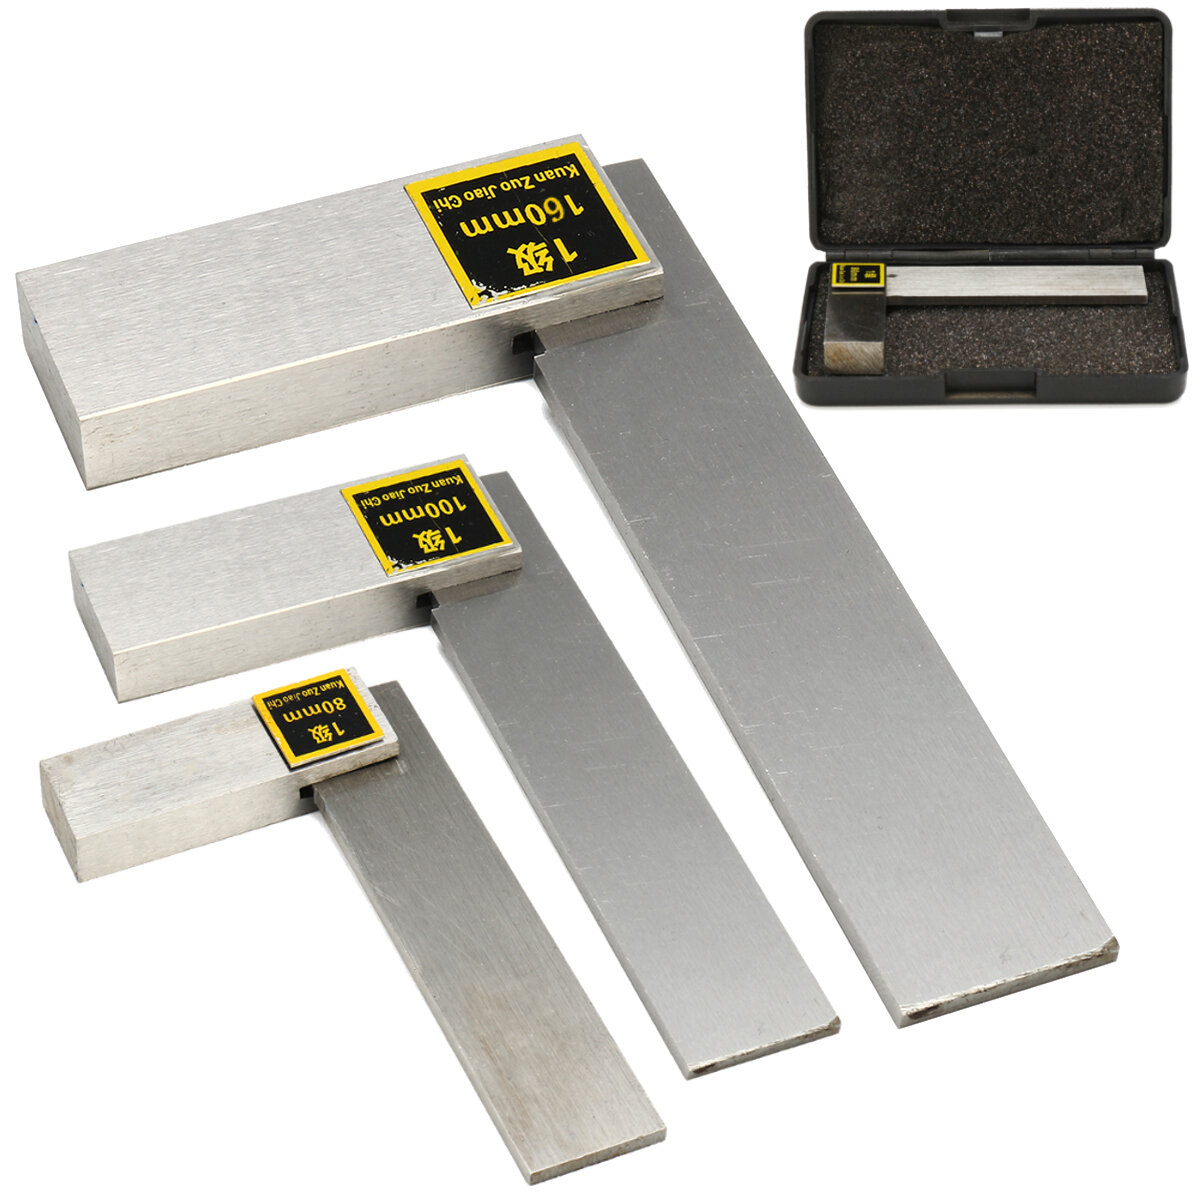 Machinist Bevel Square 90° Right Angle Ruler High Precision Design Tool